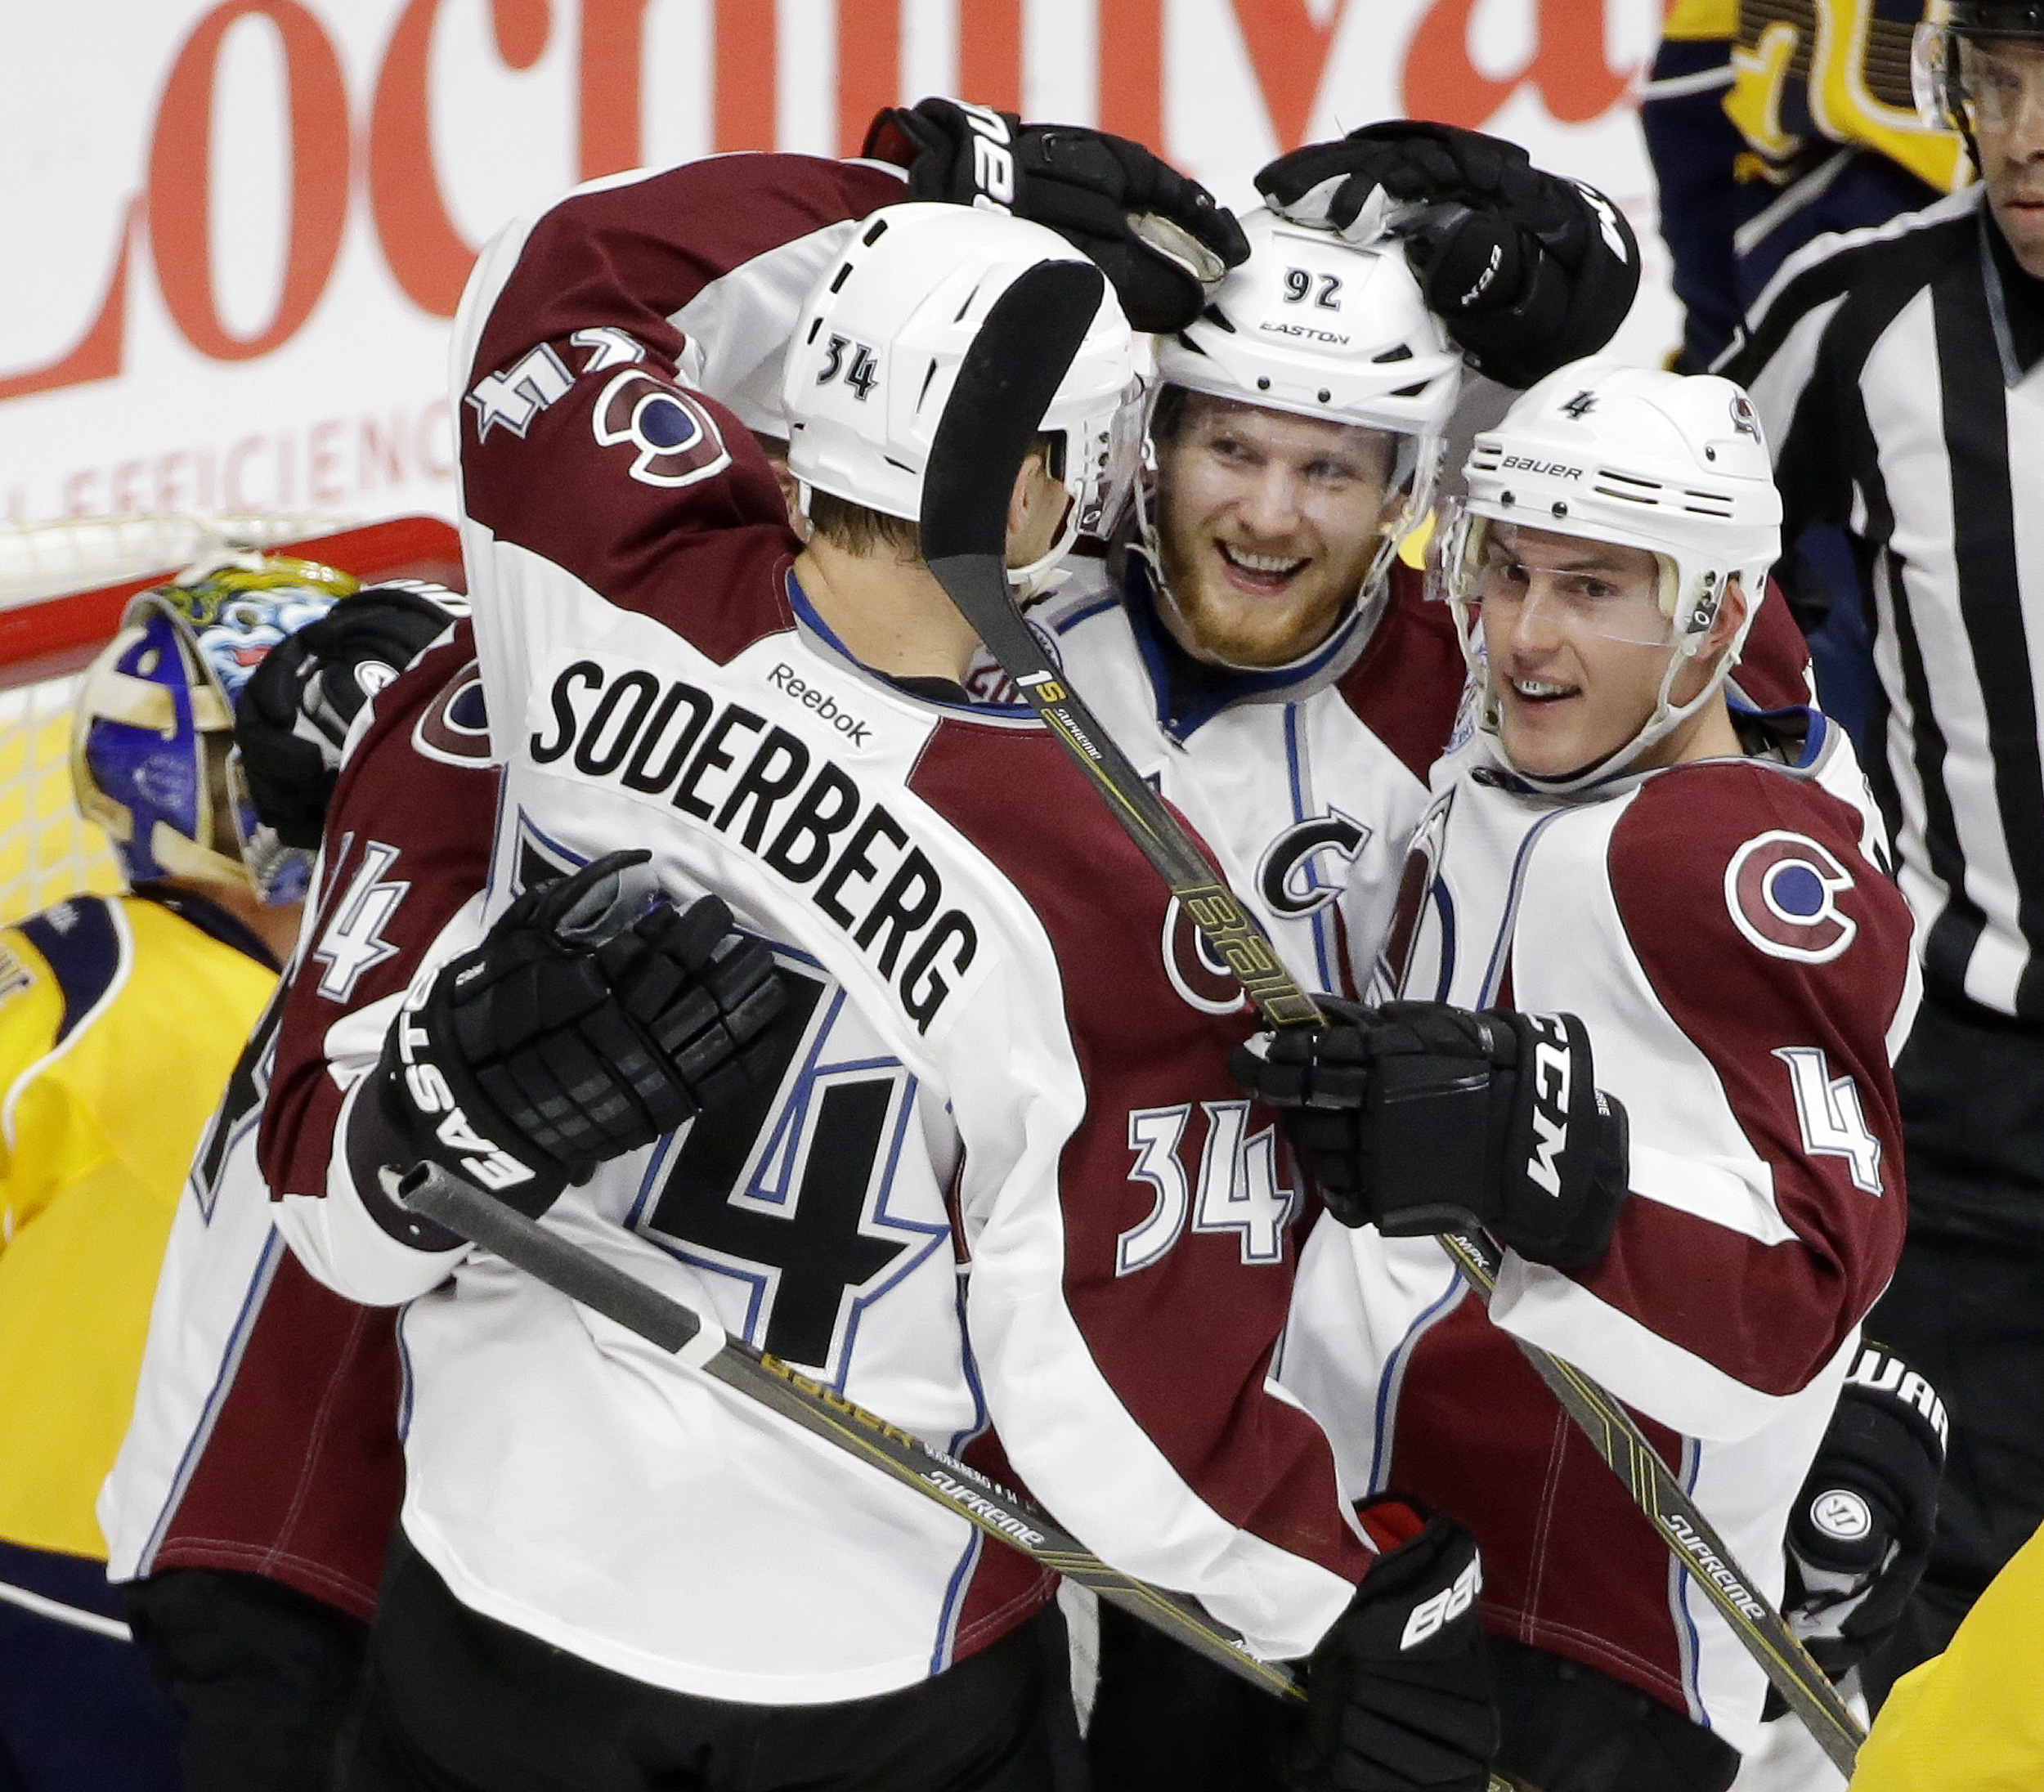 Colorado Avalanche left wing Gabriel Landeskog (92), of Sweden, is congratulated by Carl Soderberg (34), of Sweden, and Tyson Barrie (4) after Landeskog scored a goal against the Nashville Predators in the first period of an NHL hockey game Monday, March